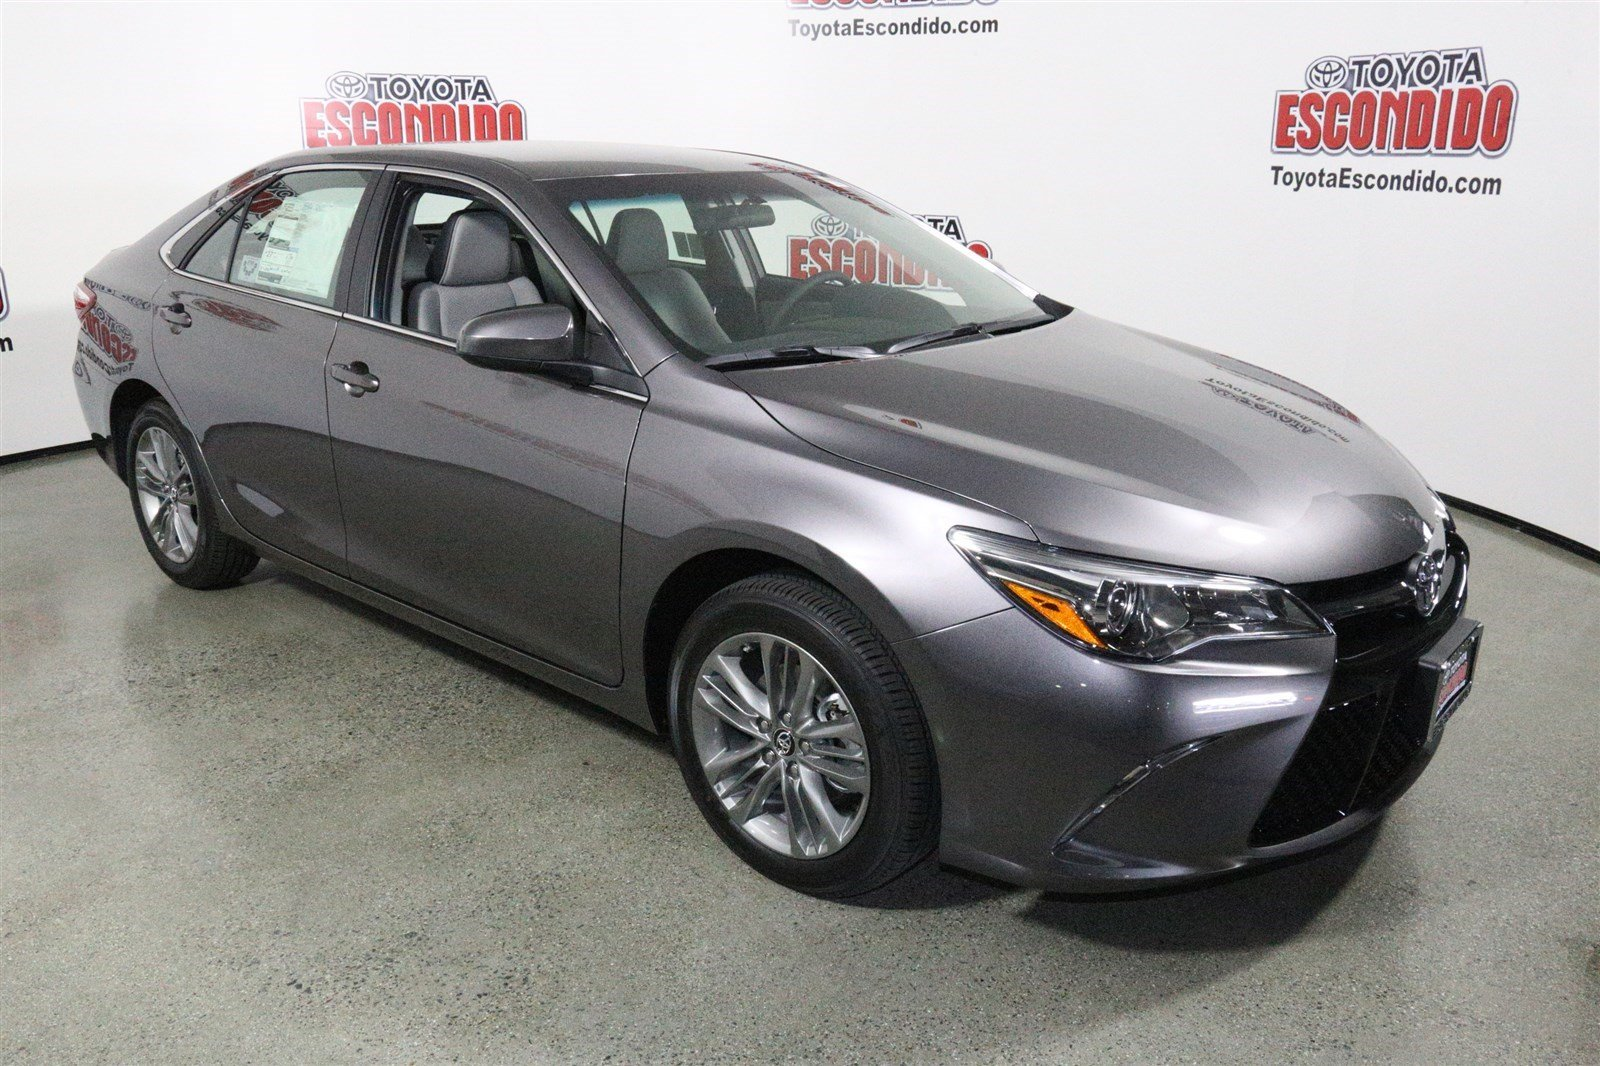 new 2017 toyota camry se 4dr car in escondido 1014092 toyota of escondido. Black Bedroom Furniture Sets. Home Design Ideas